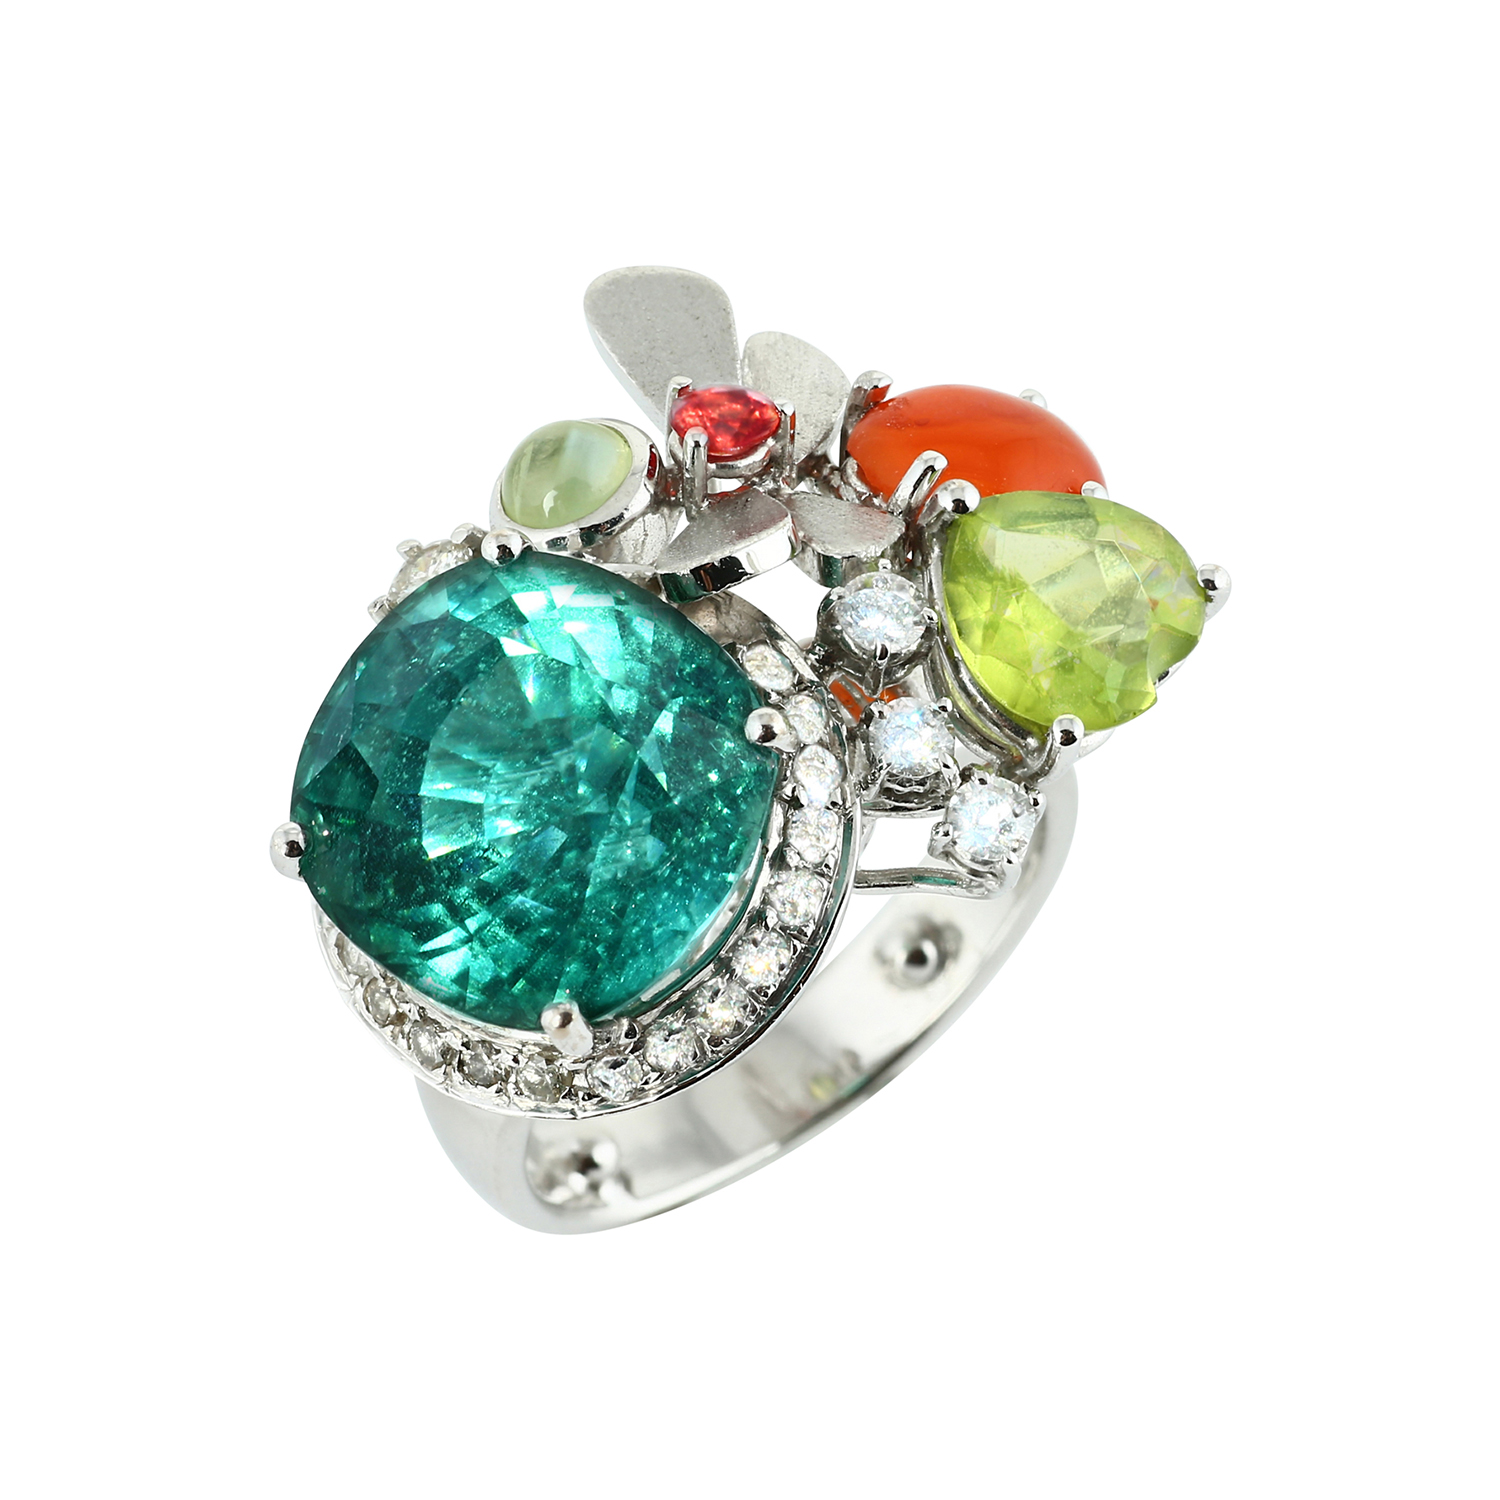 Bespoke Jewellery Singapore Exotic Gems & Jewellery Pte Ltd Green Tourmaline Ring